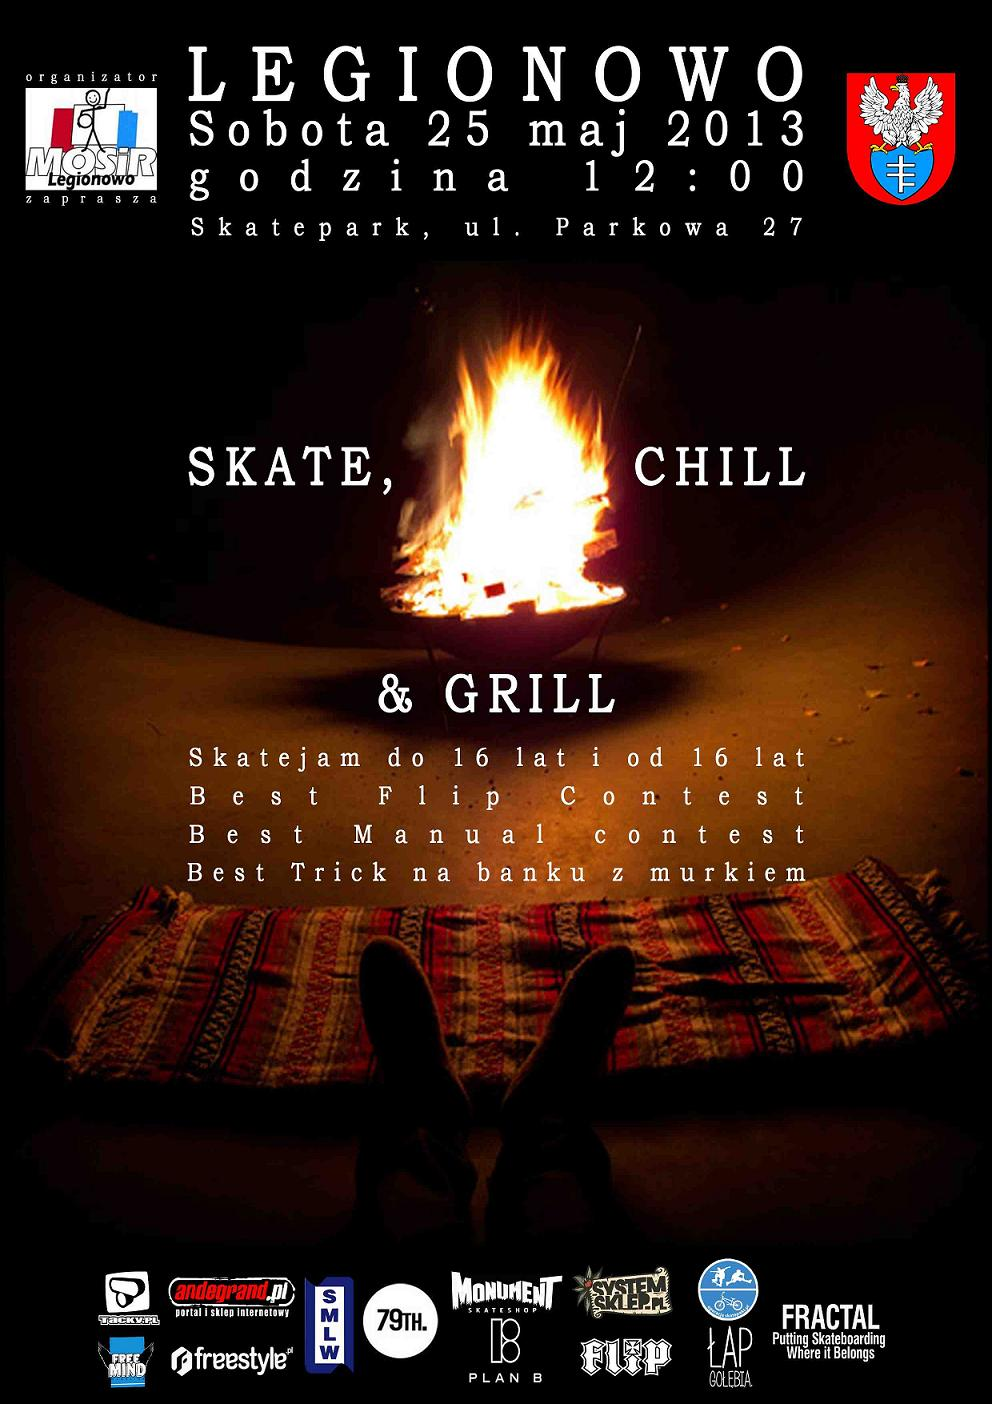 Skate Chill & Grill